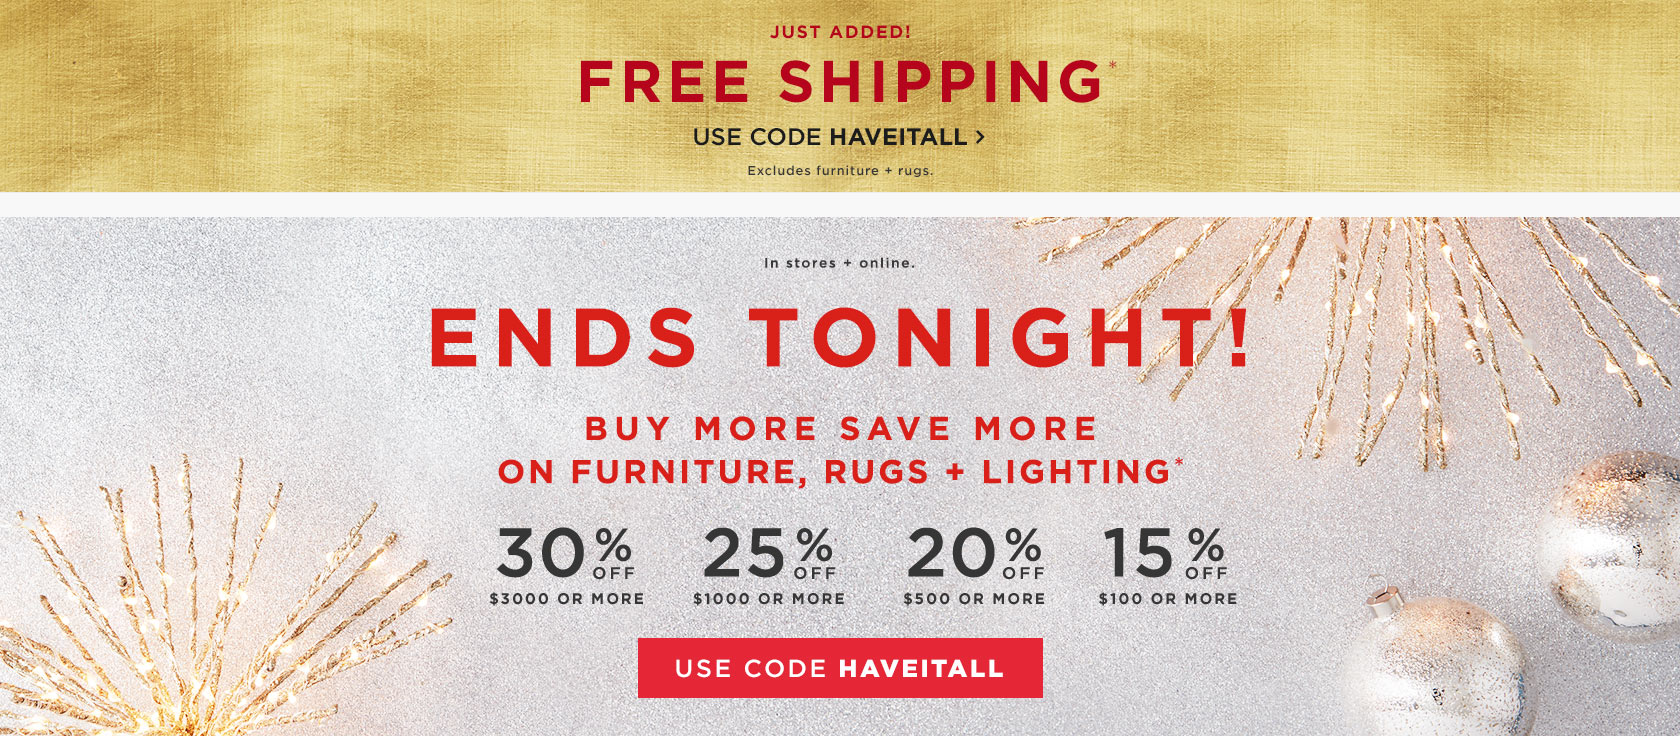 In Stores + Online. Buy More Save More On Furniture, Rugs + Lighting. Use Code HAVEITALL